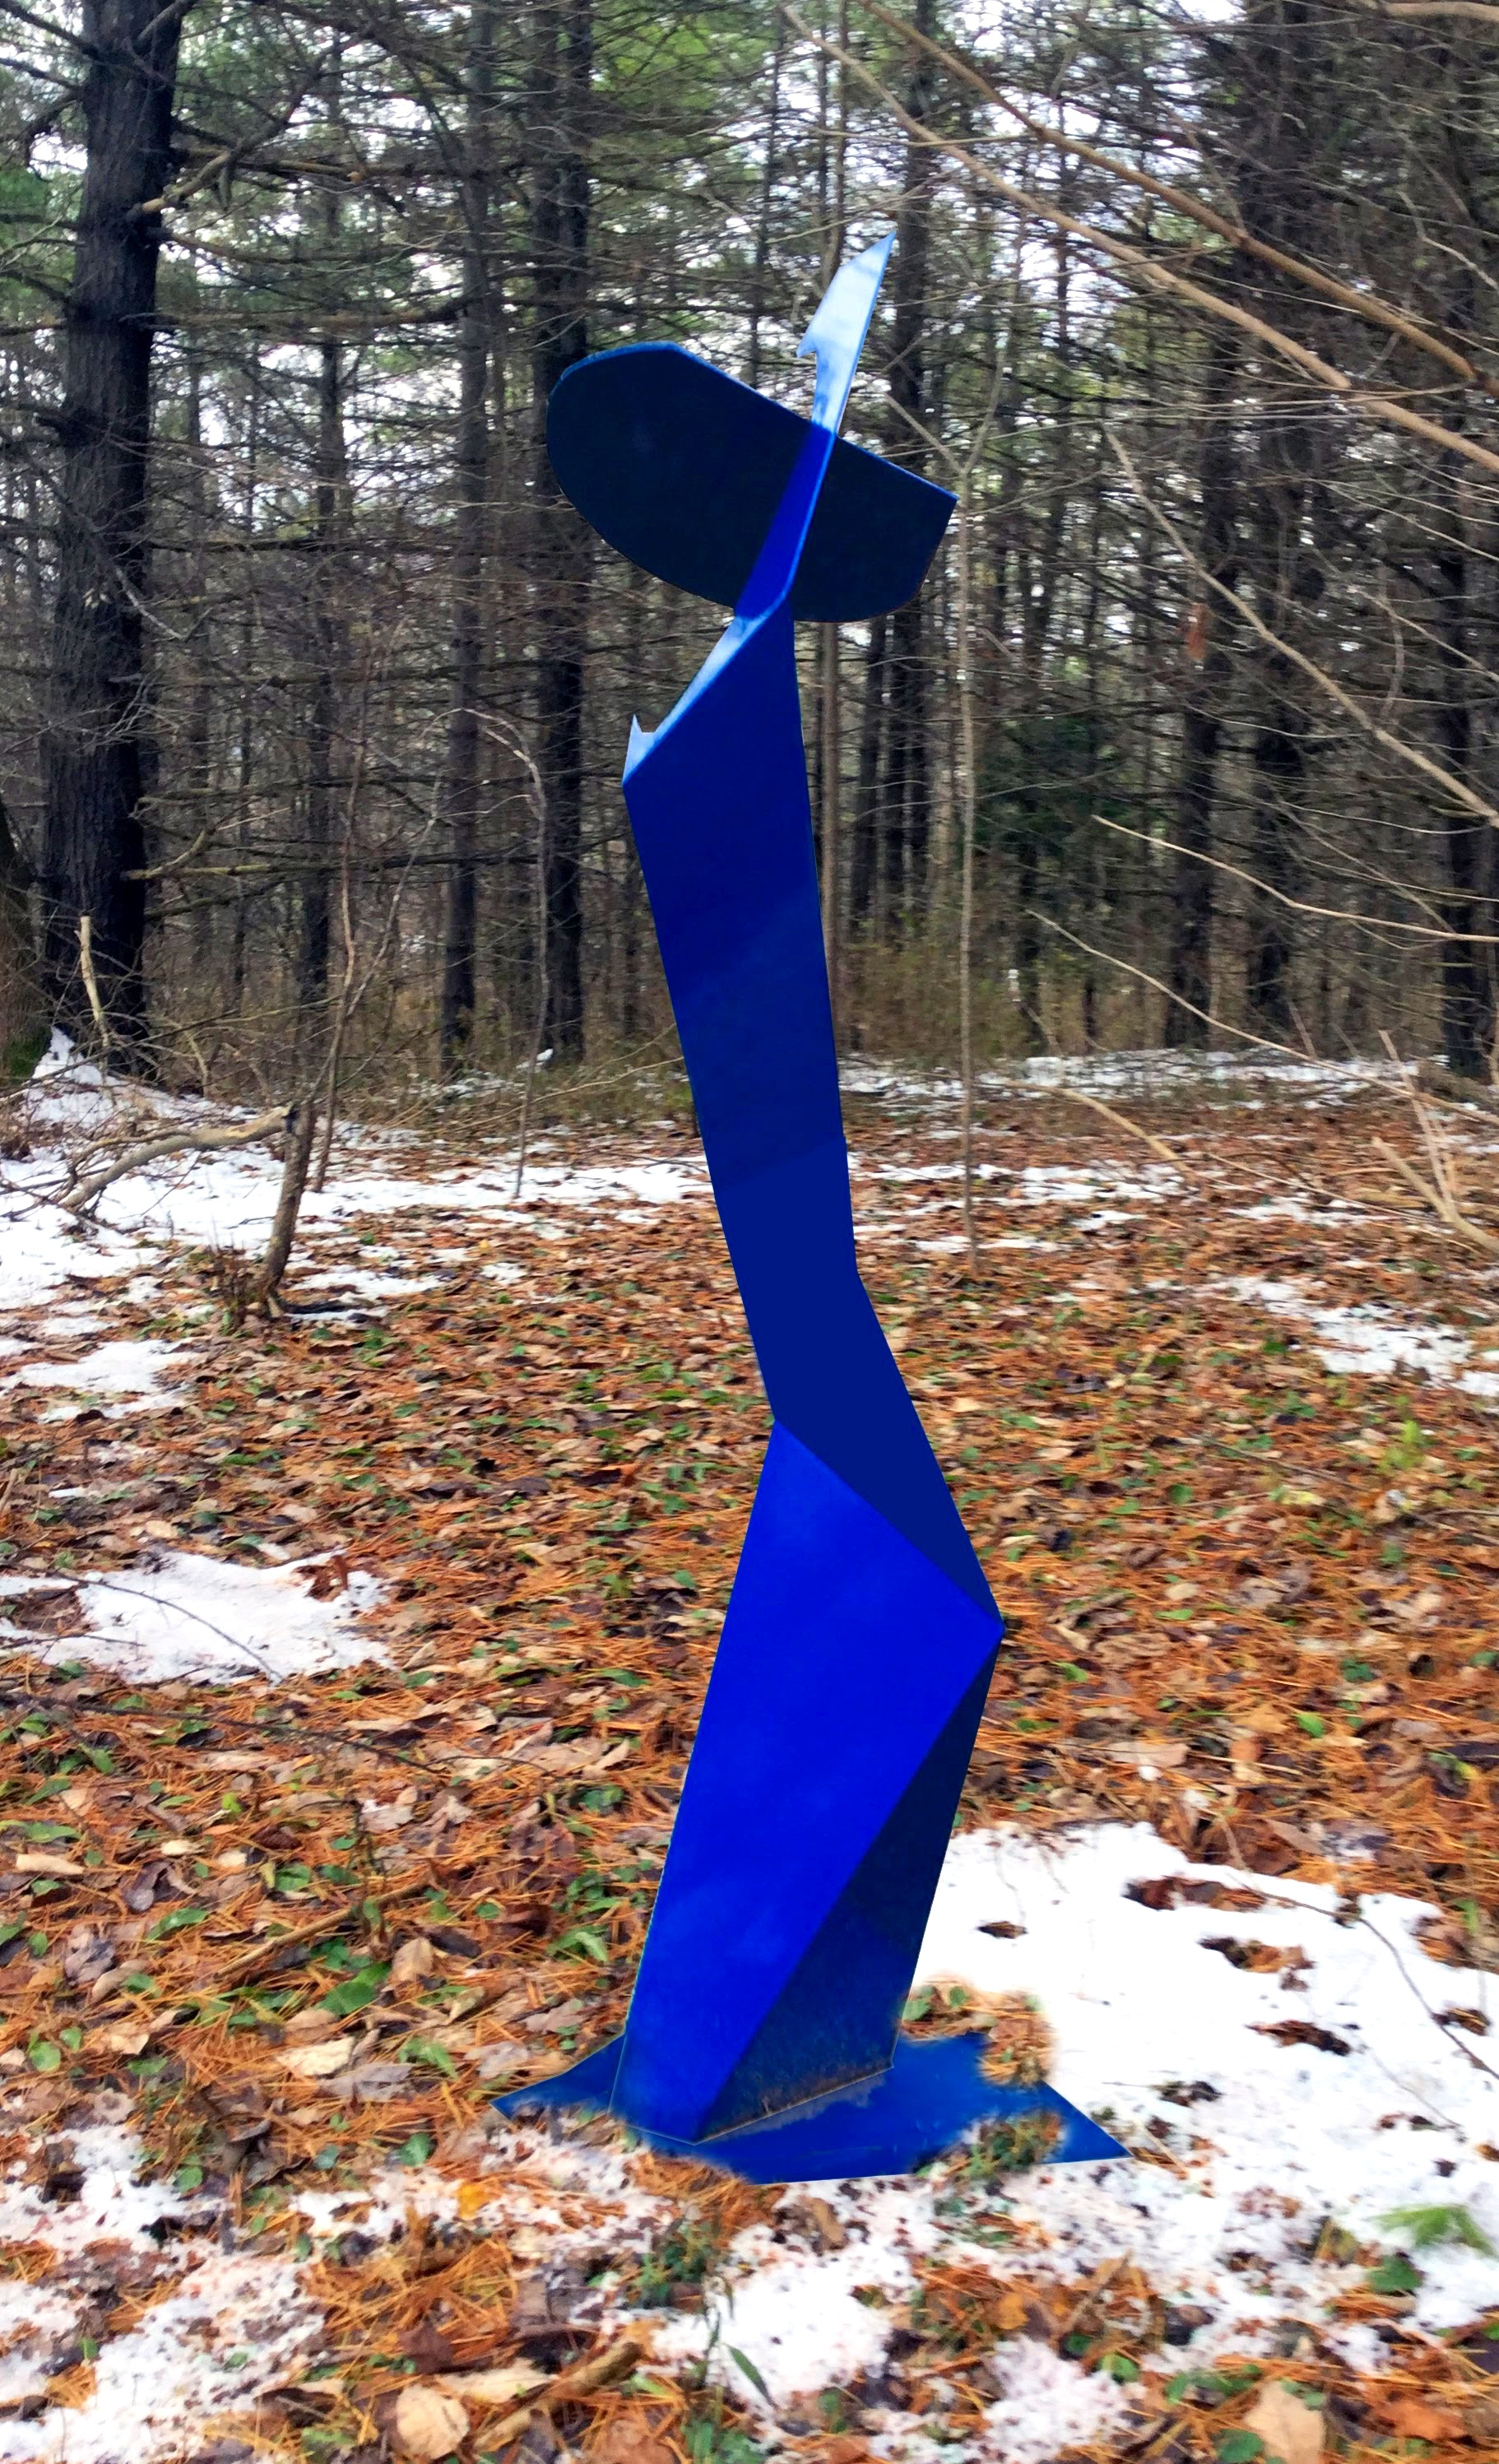 Pure Form #8, painted welded steel, 85 x 30 x 24 in, $15,000